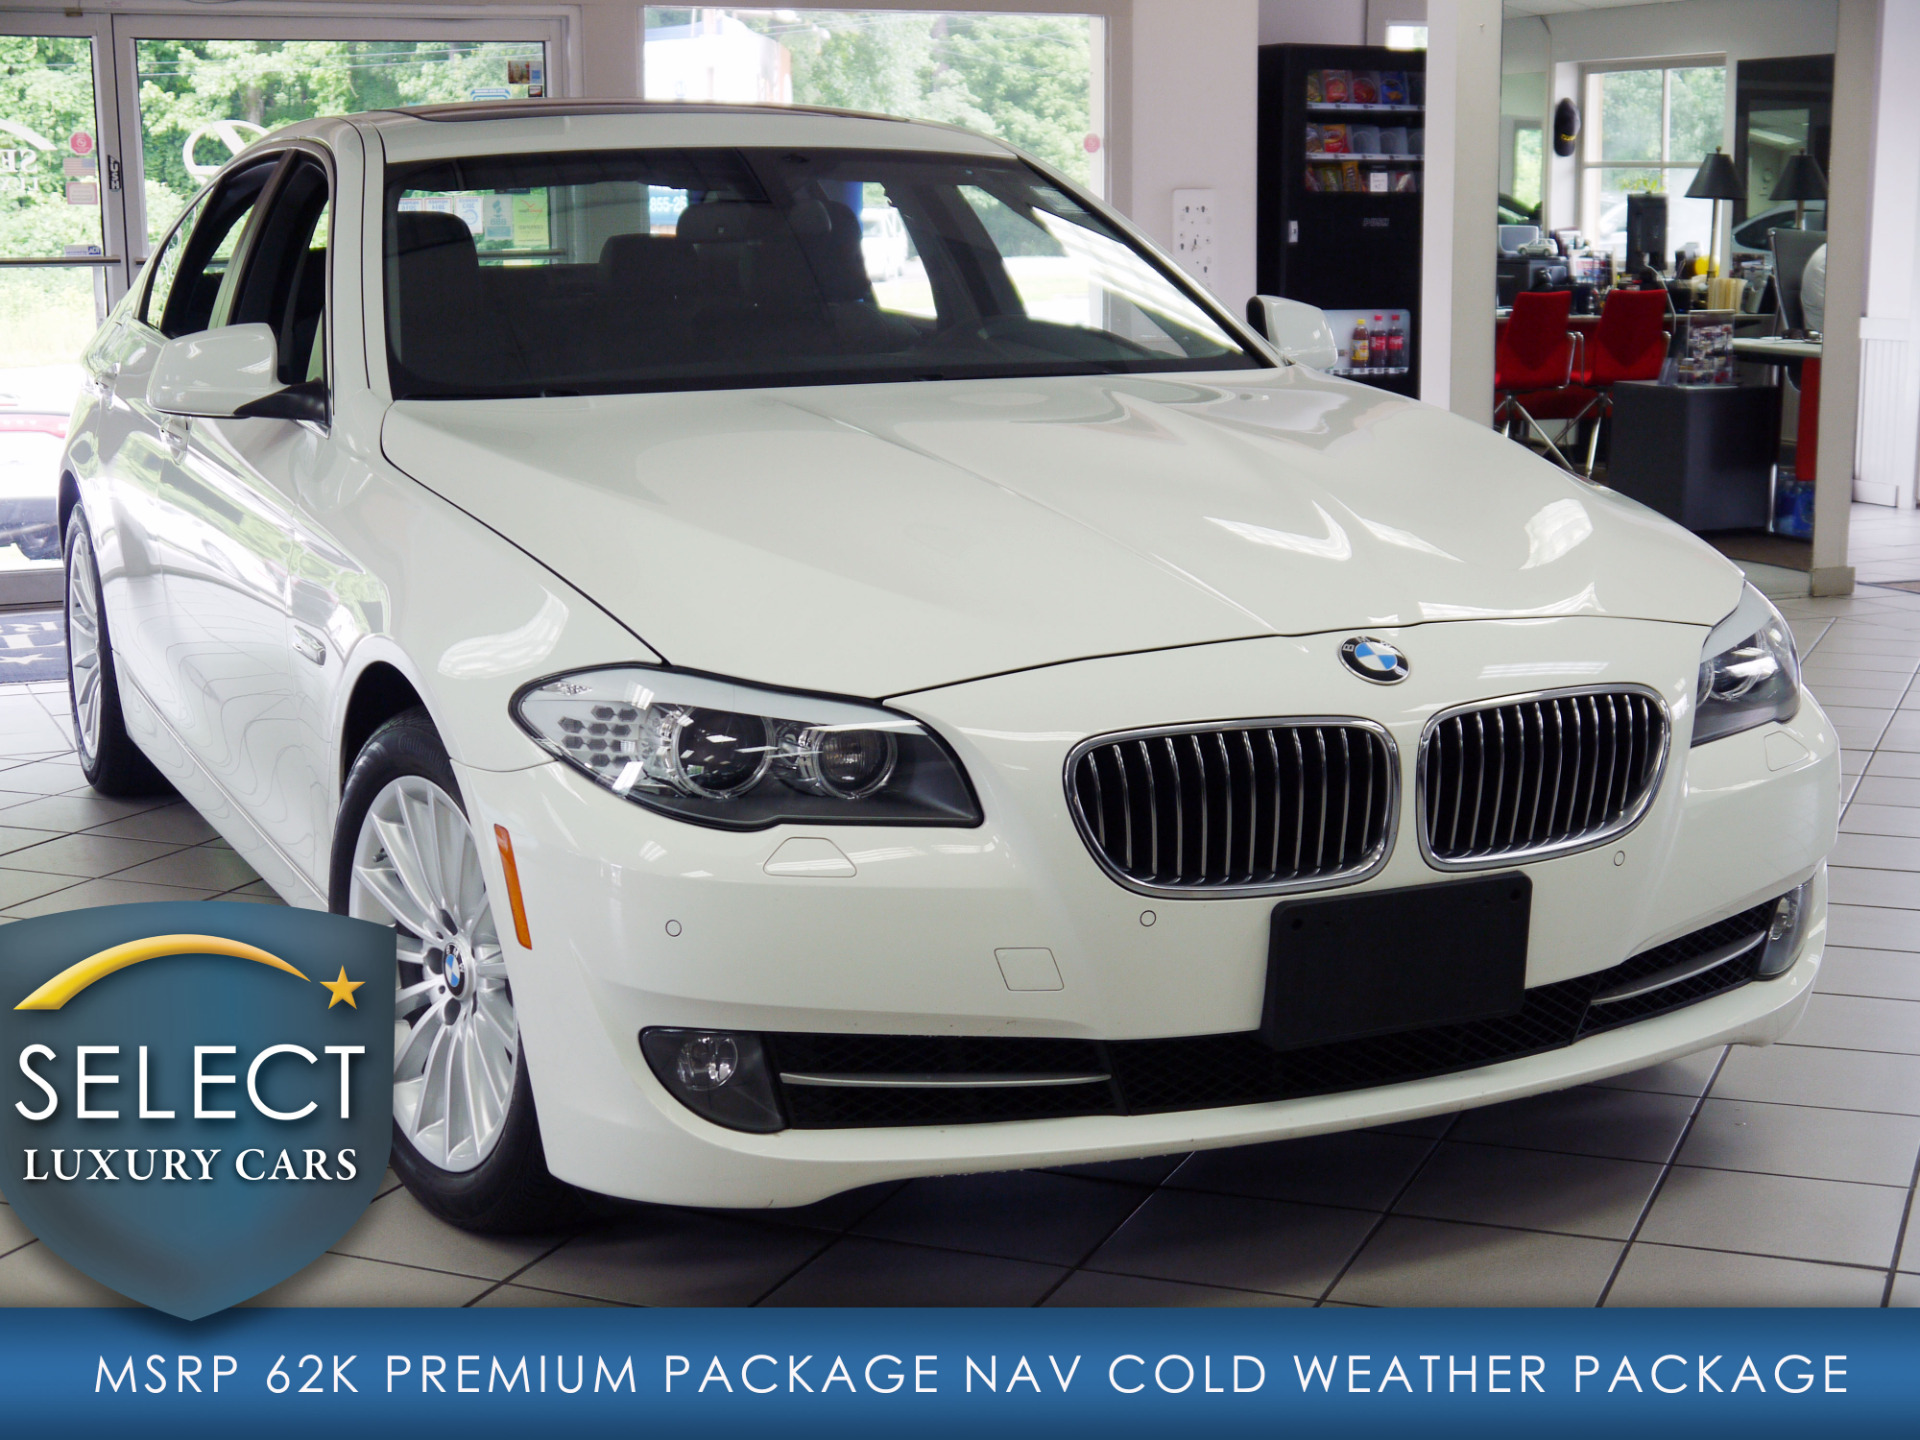 BMW 5 series 535i 2013 photo - 10